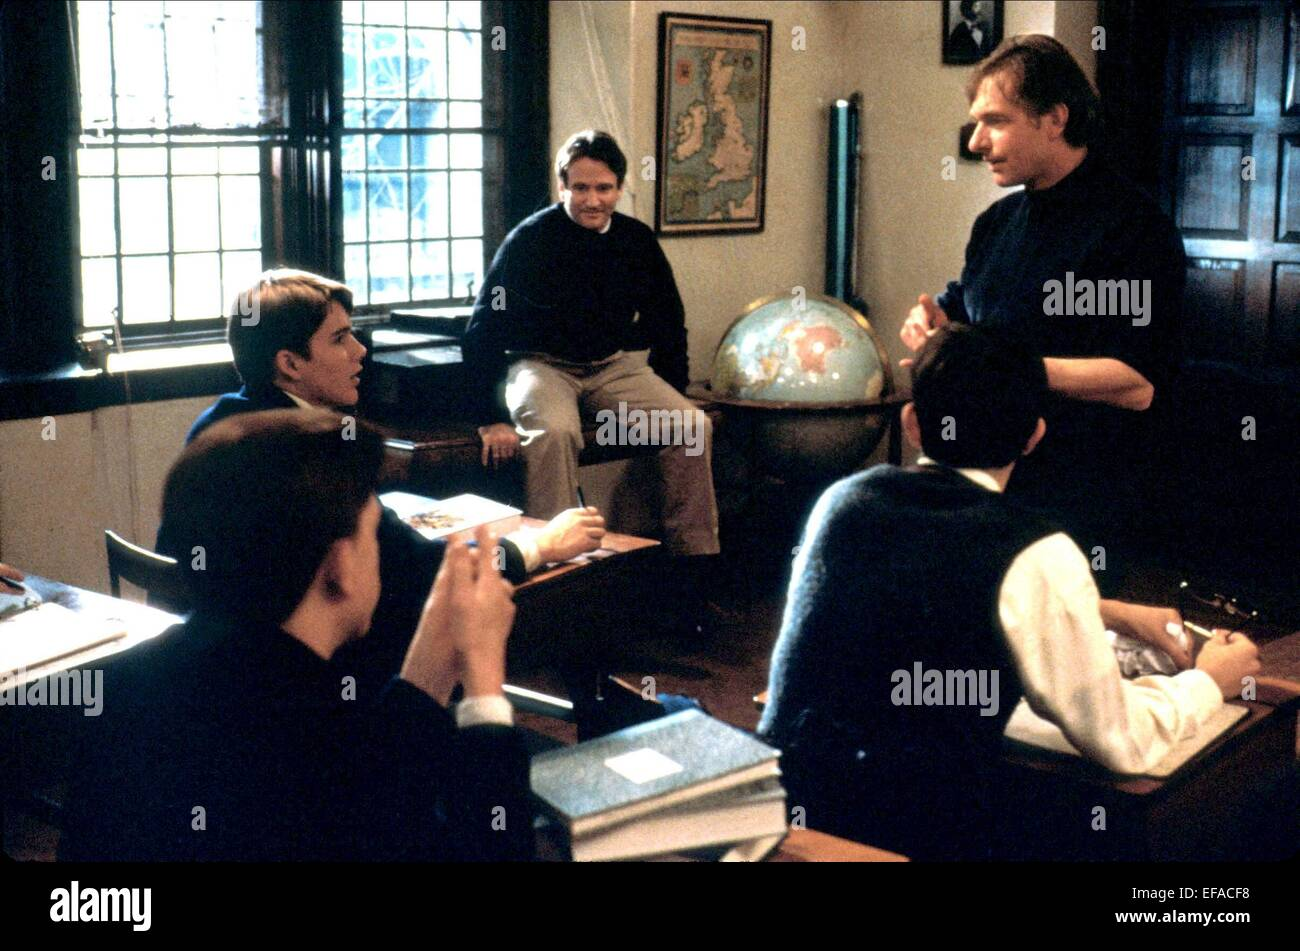 the role of todd anderson in dead poets society a movie directed by peter weir The roundtable team waxes lyrical over the 1989 movie dead poets society, directed by peter weir with screenplay by tom schulmanwhat we thought was a global worldview story could actually be a society story that ends negatively.